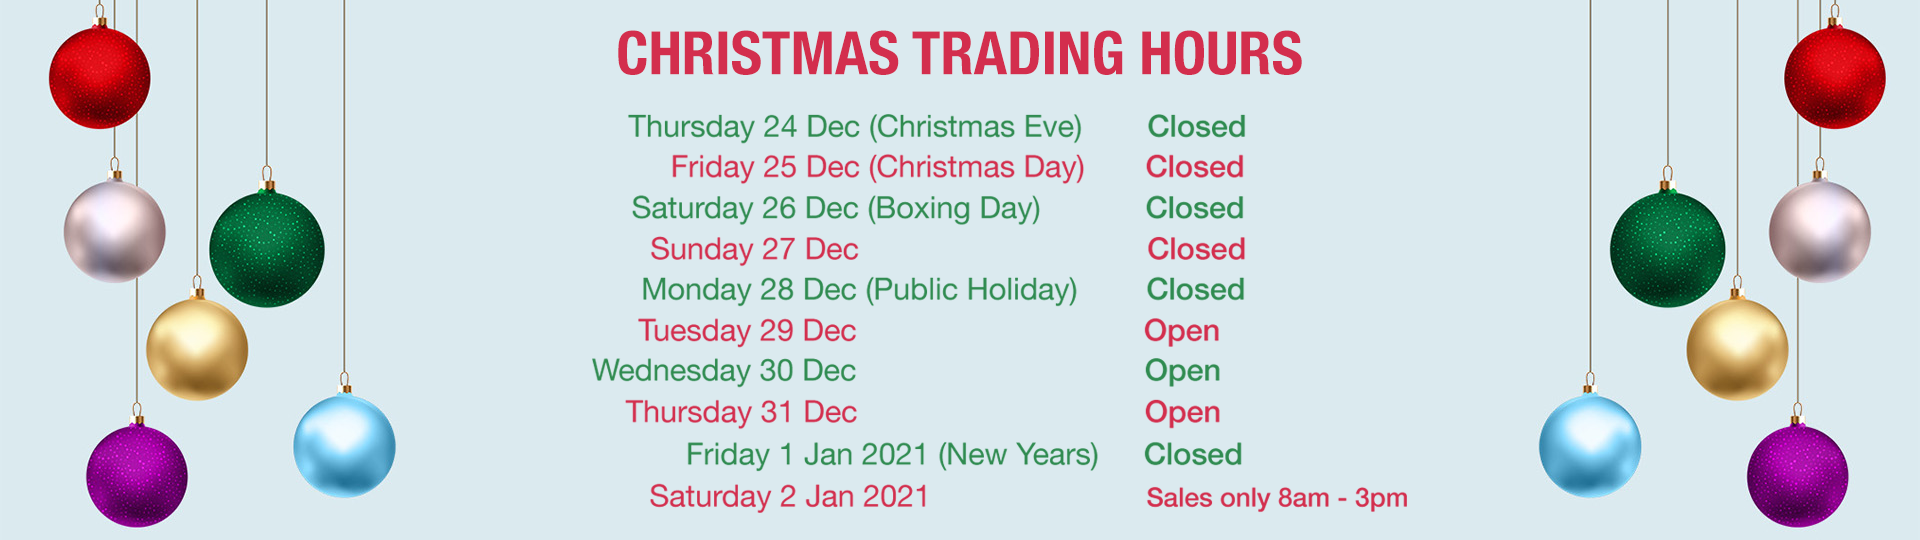 Geoff King Motors Christmas Trading Hours 2020